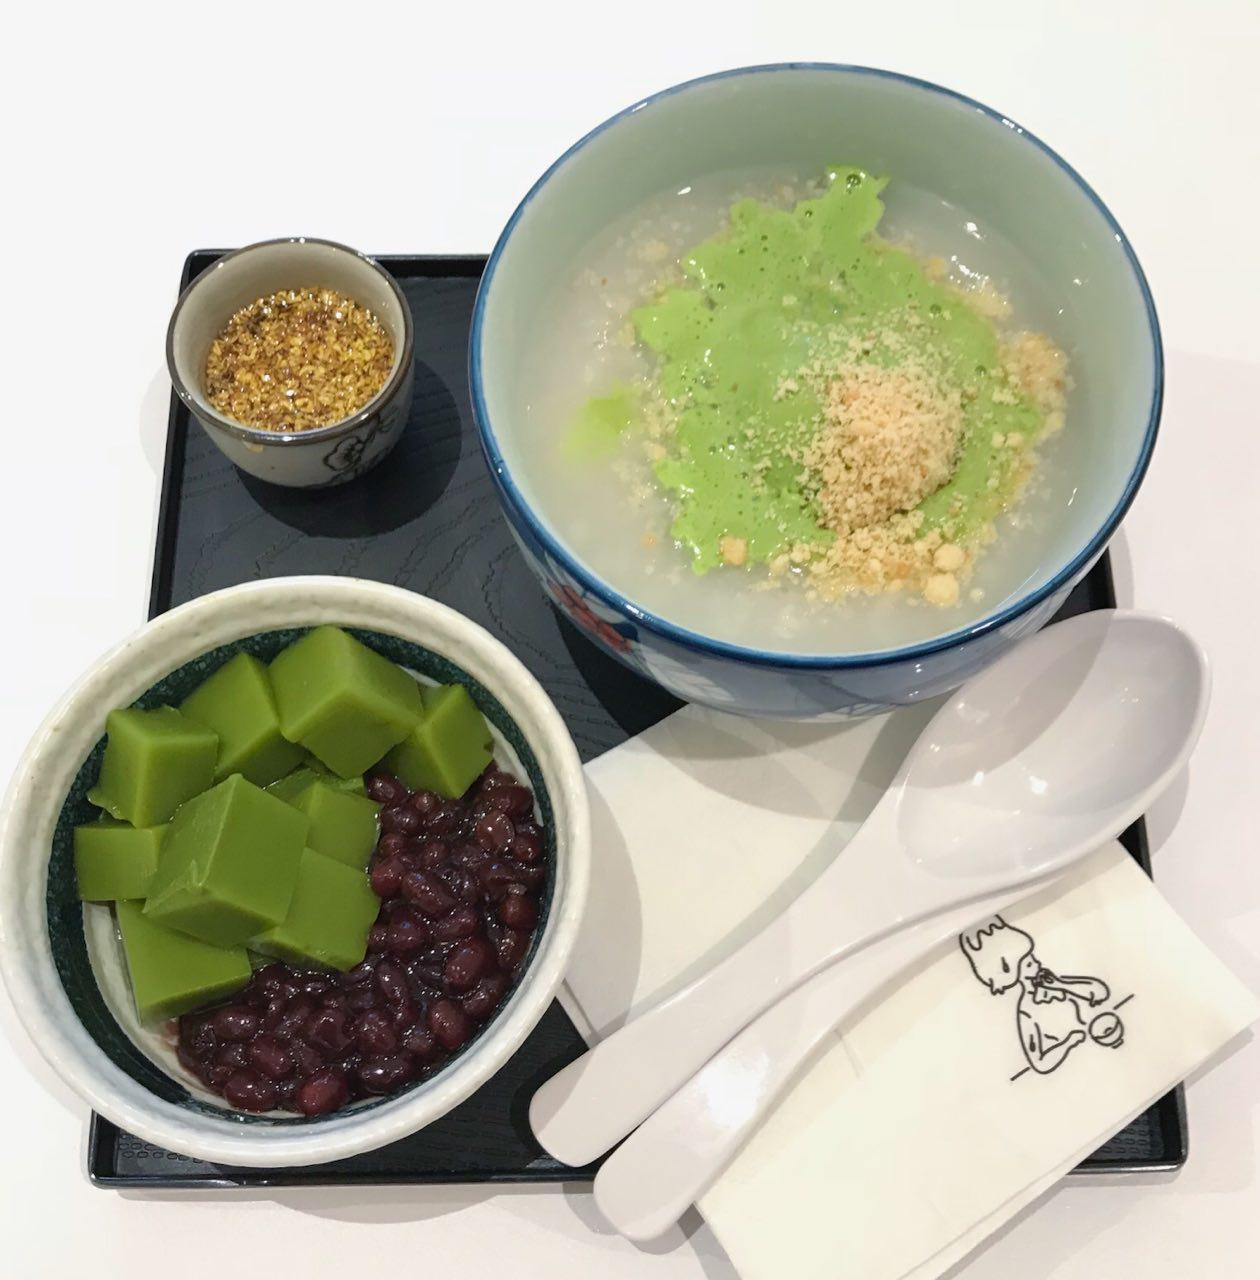 For More Delicious Japanese Desserts